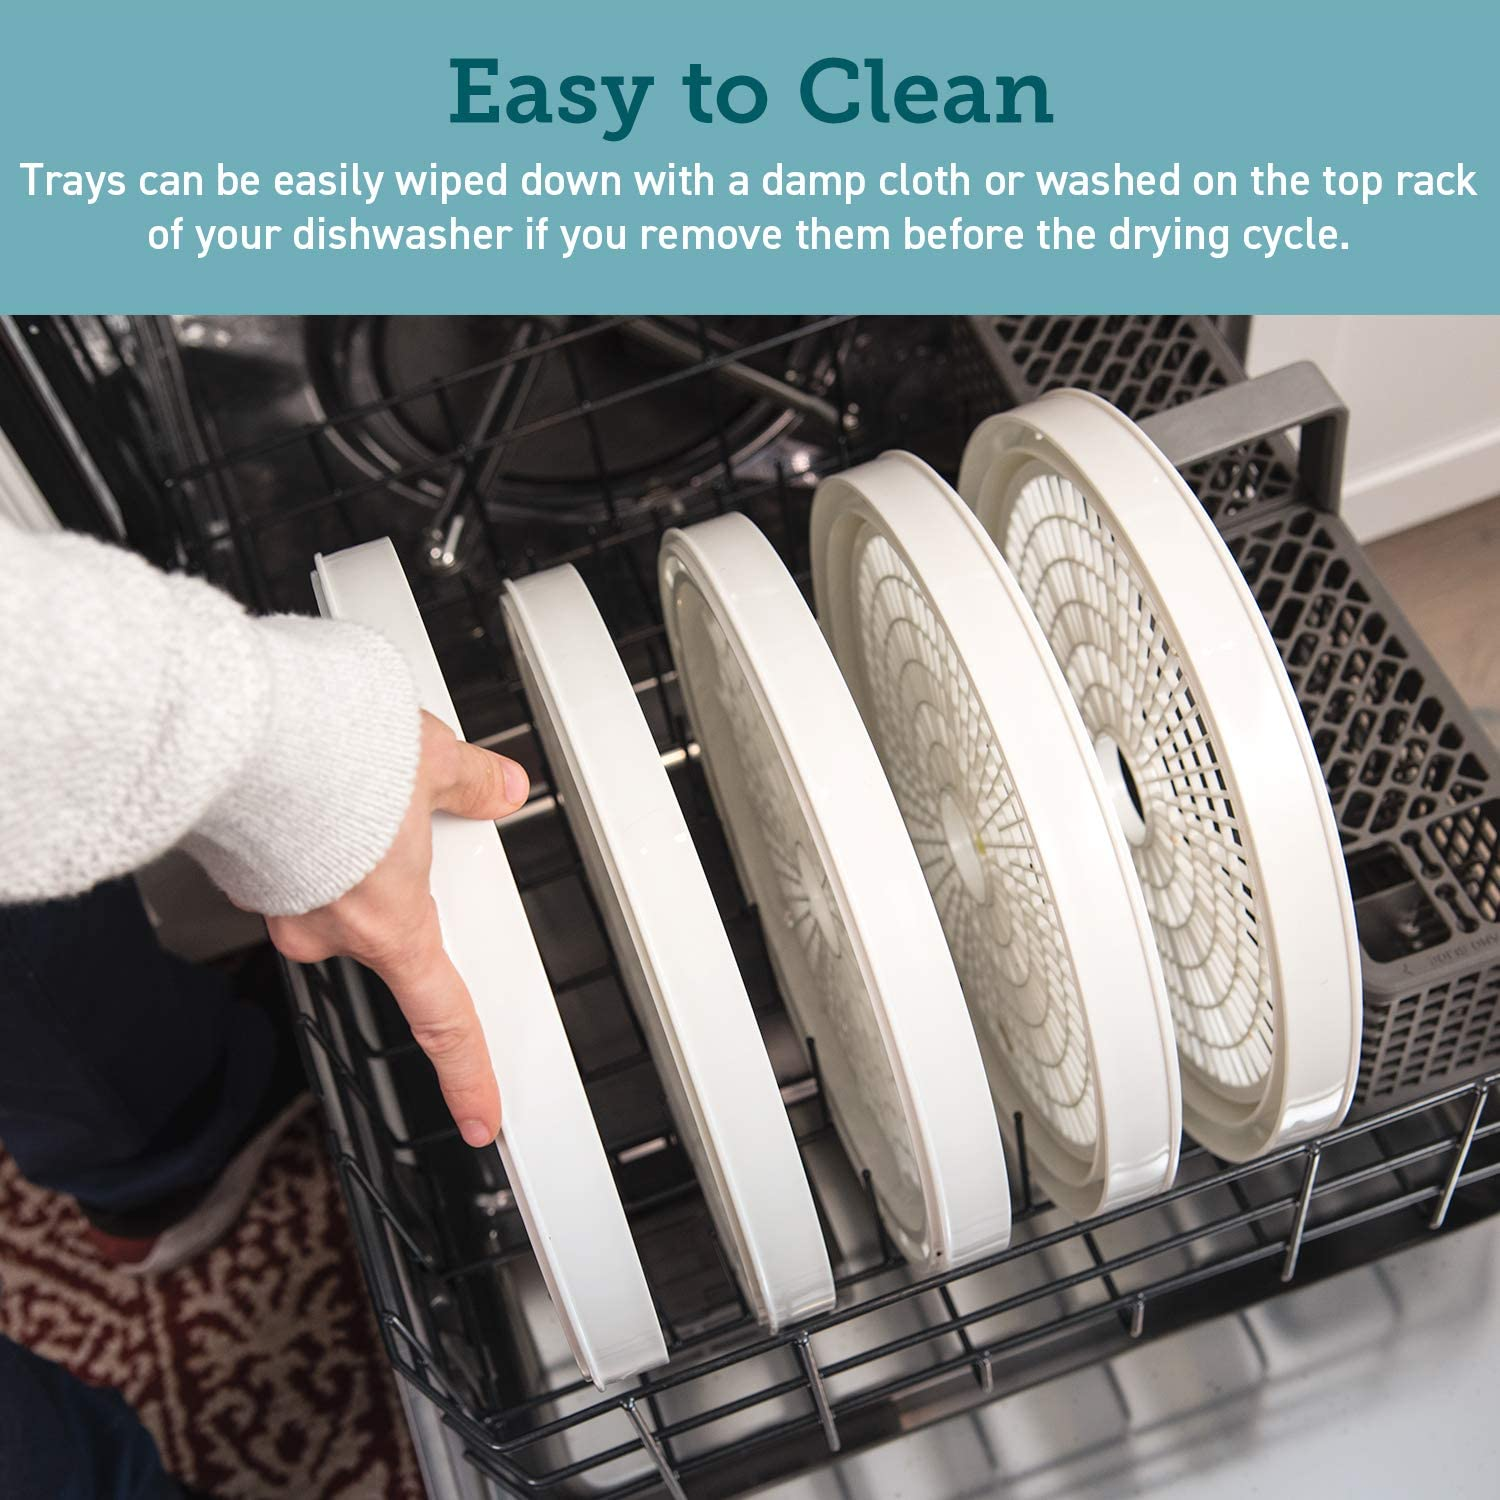 dehydrators-that-are-dish-washer-and-wash-safe